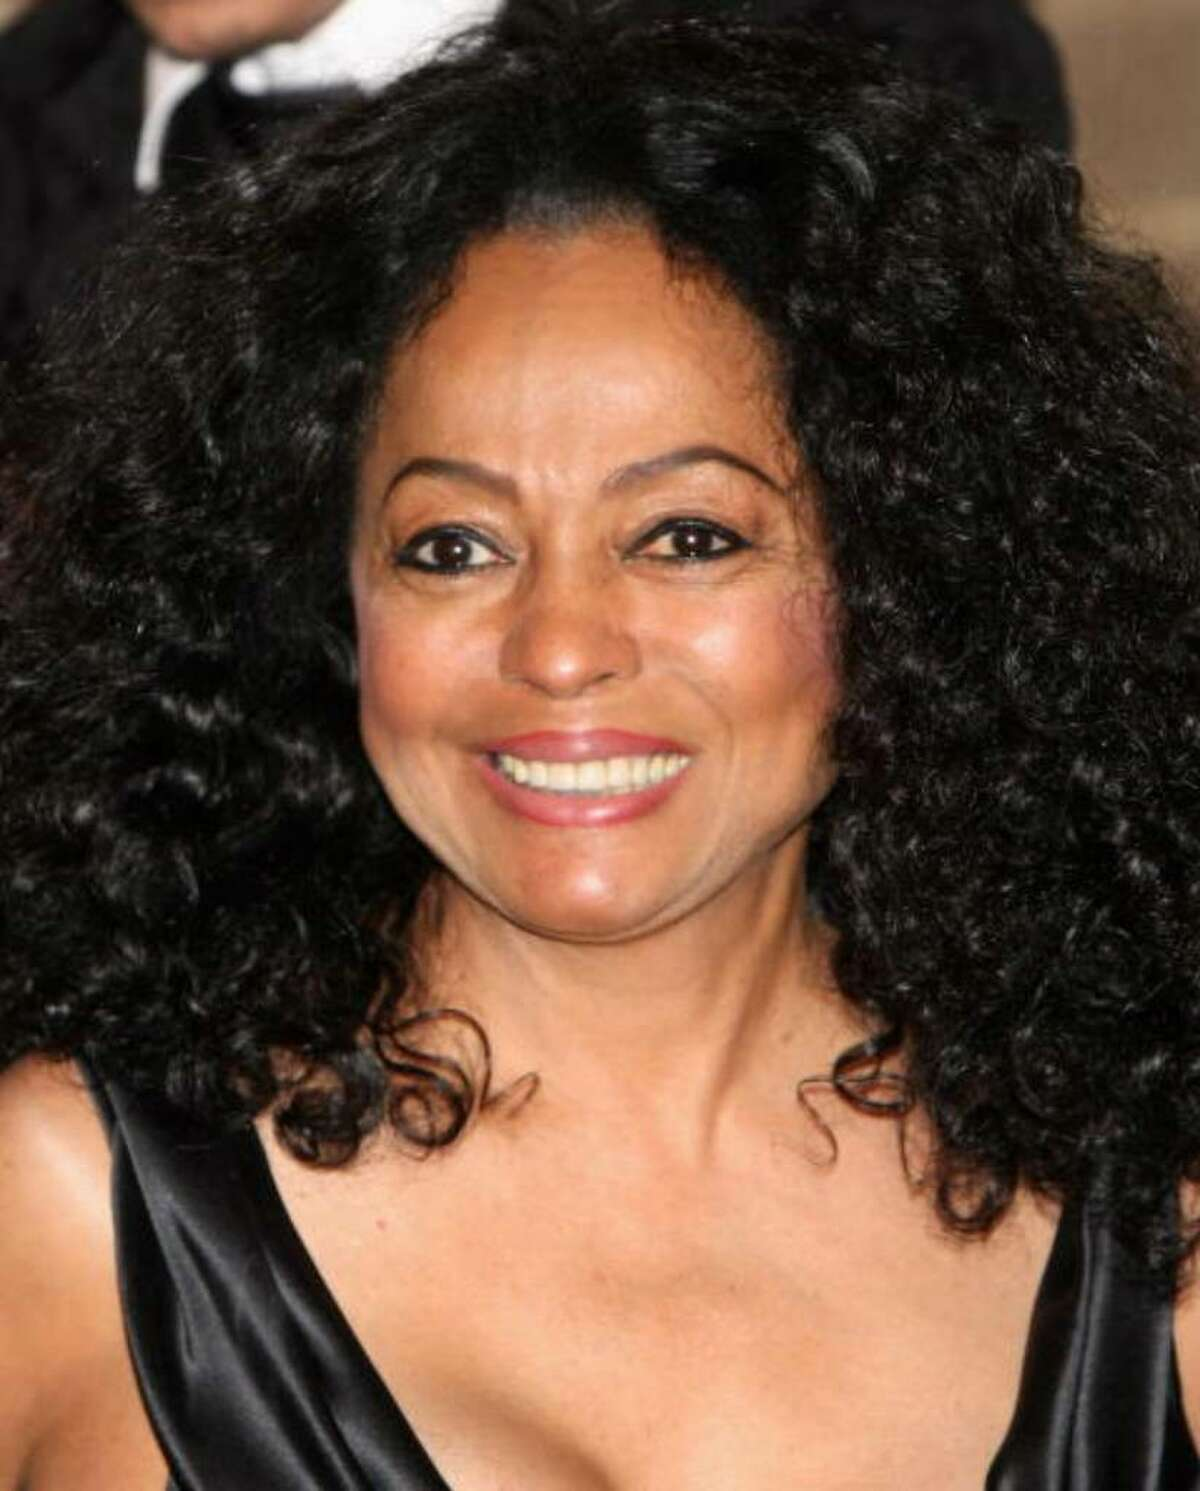 Singer Diana Ross arrives at the Norwegian Nobel Committe Banquet at the Grand Hotel on December 10, 2008 in Oslo, Norway. Ross is asking Greenwich officials to reduce the tax bill on the Belle Haven home where she used to live. (Photo by Chris Jackson/Getty Images)